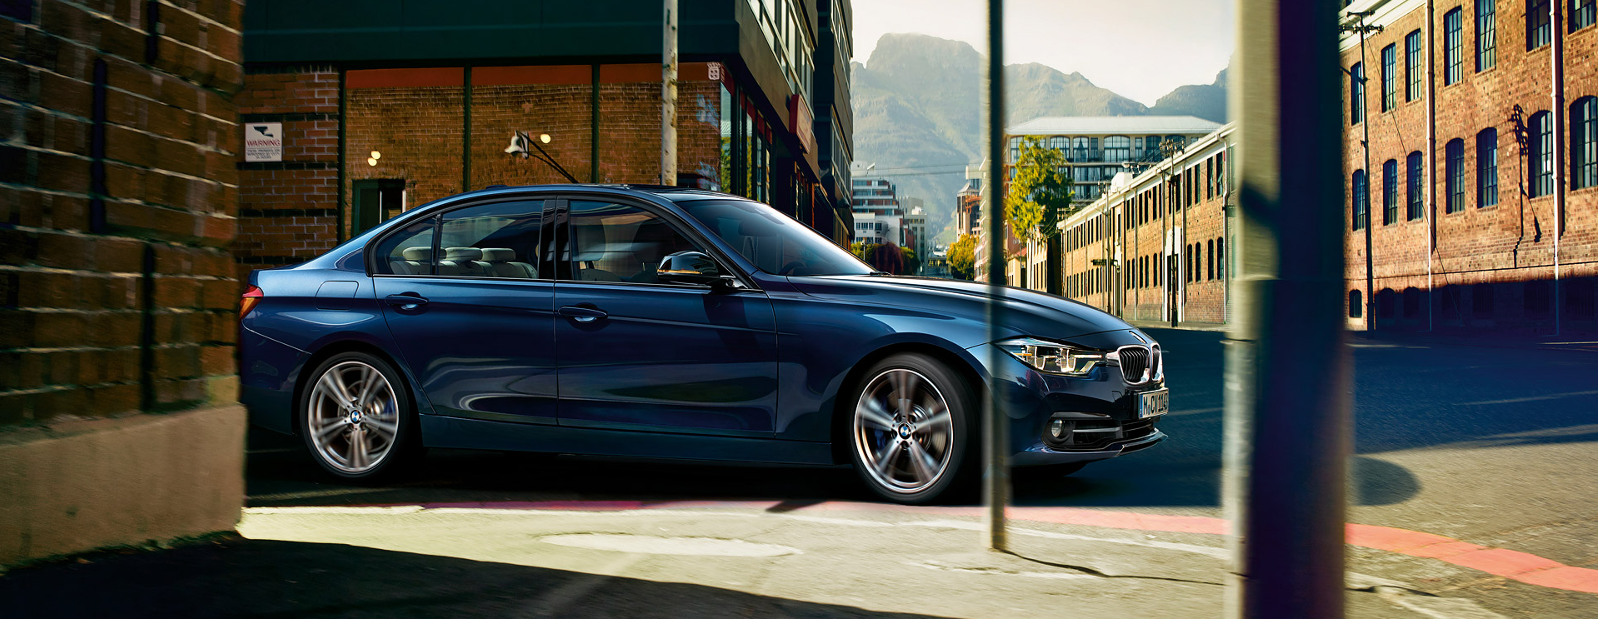 Lateral BMW Serie 3